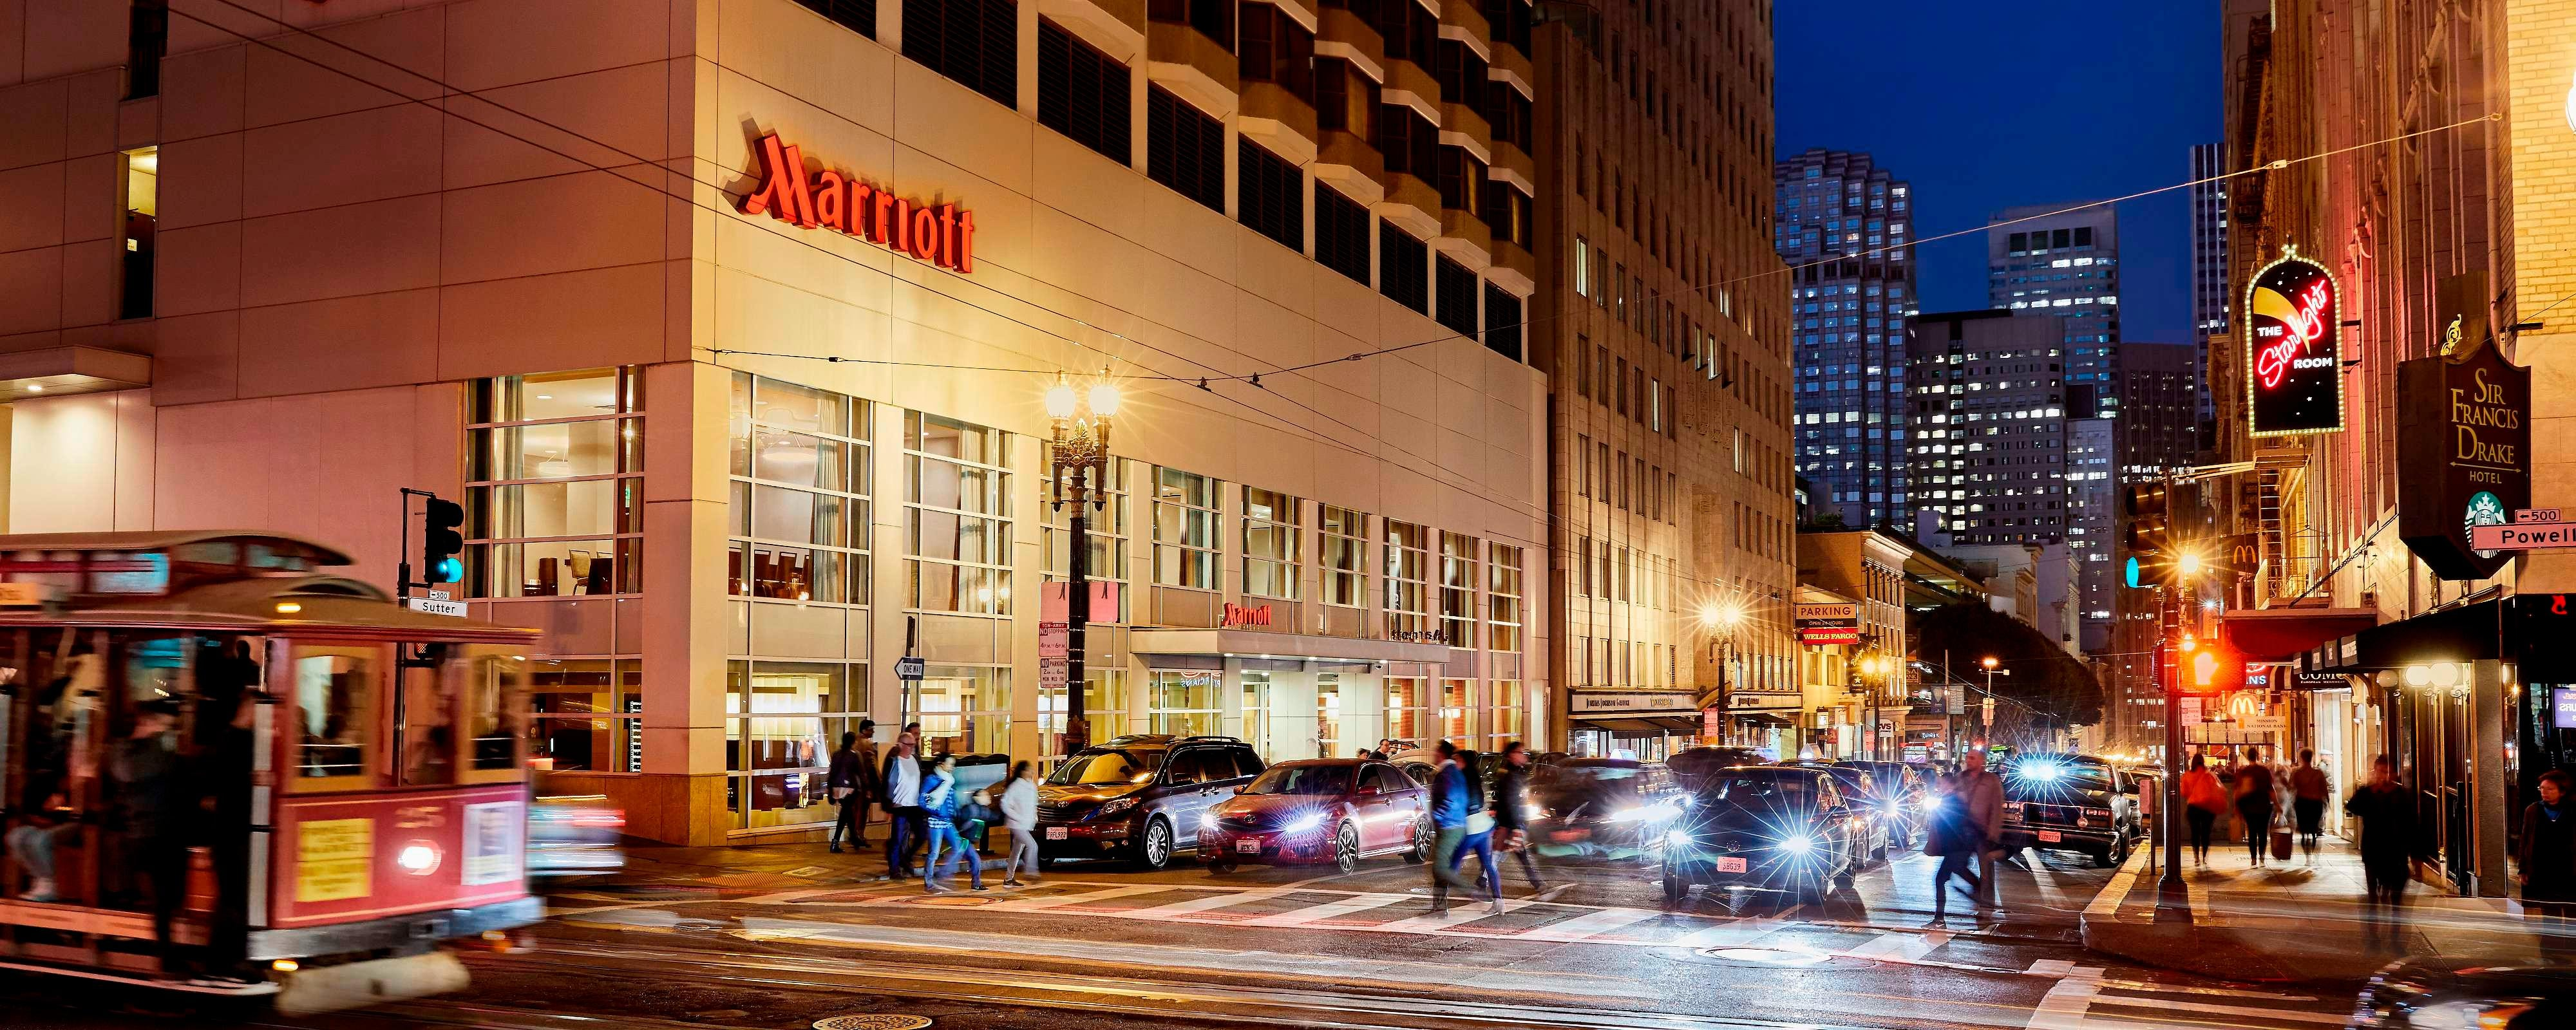 Hotel in Union Square San Francisco | San Francisco Marriott Union ...